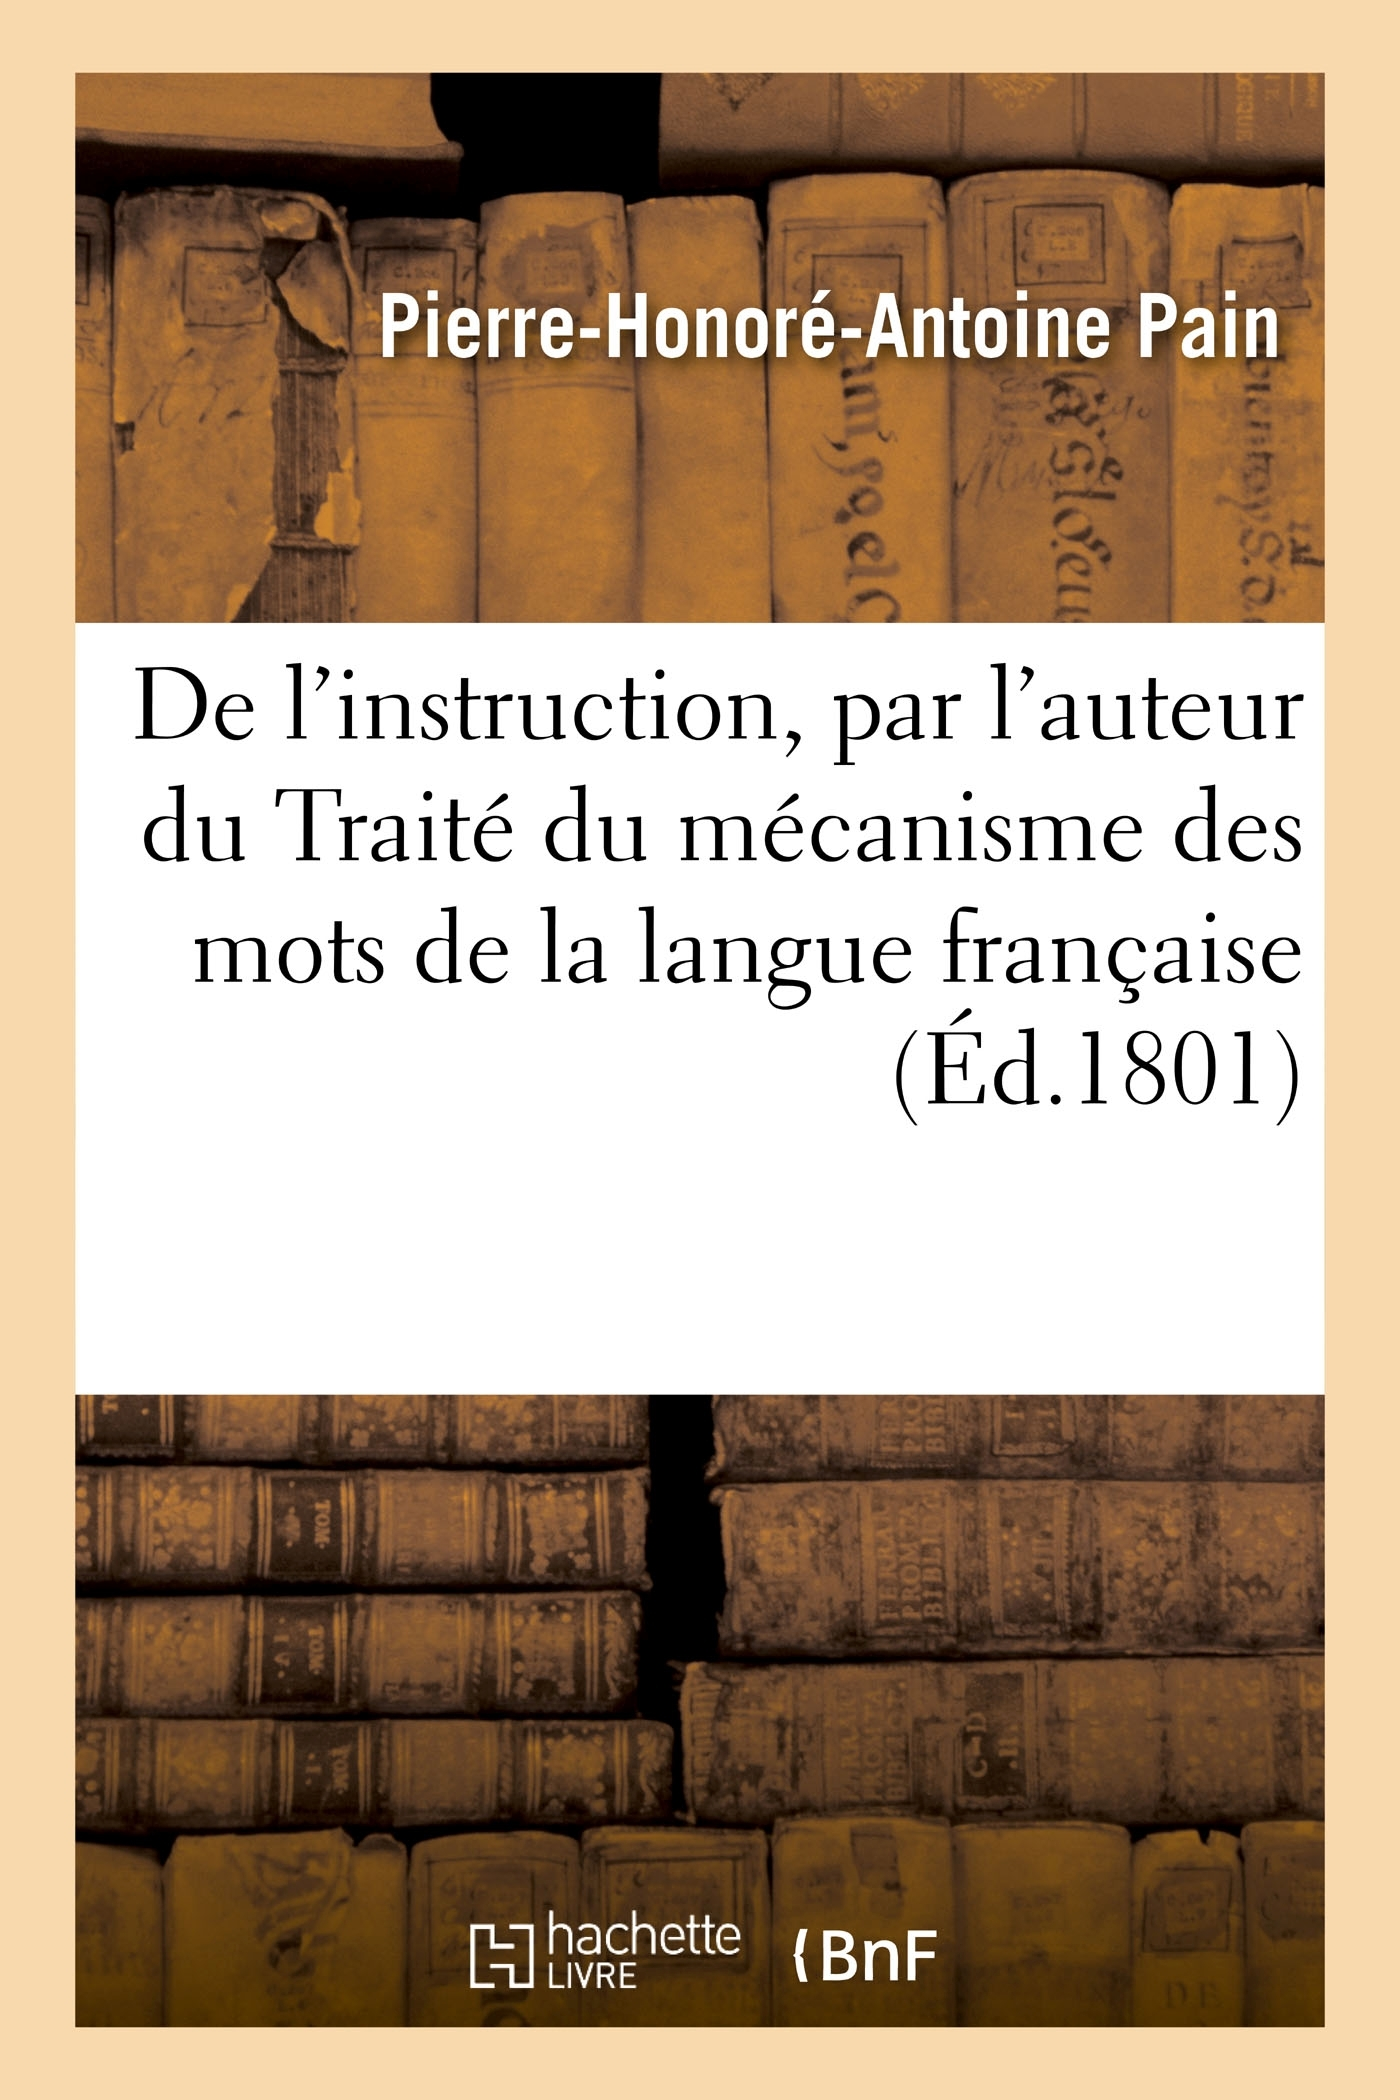 DE L'INSTRUCTION, PAR L'AUTEUR DU TRAITE DU MECANISME DES MOTS DE LA LANGUE FRANCAISE